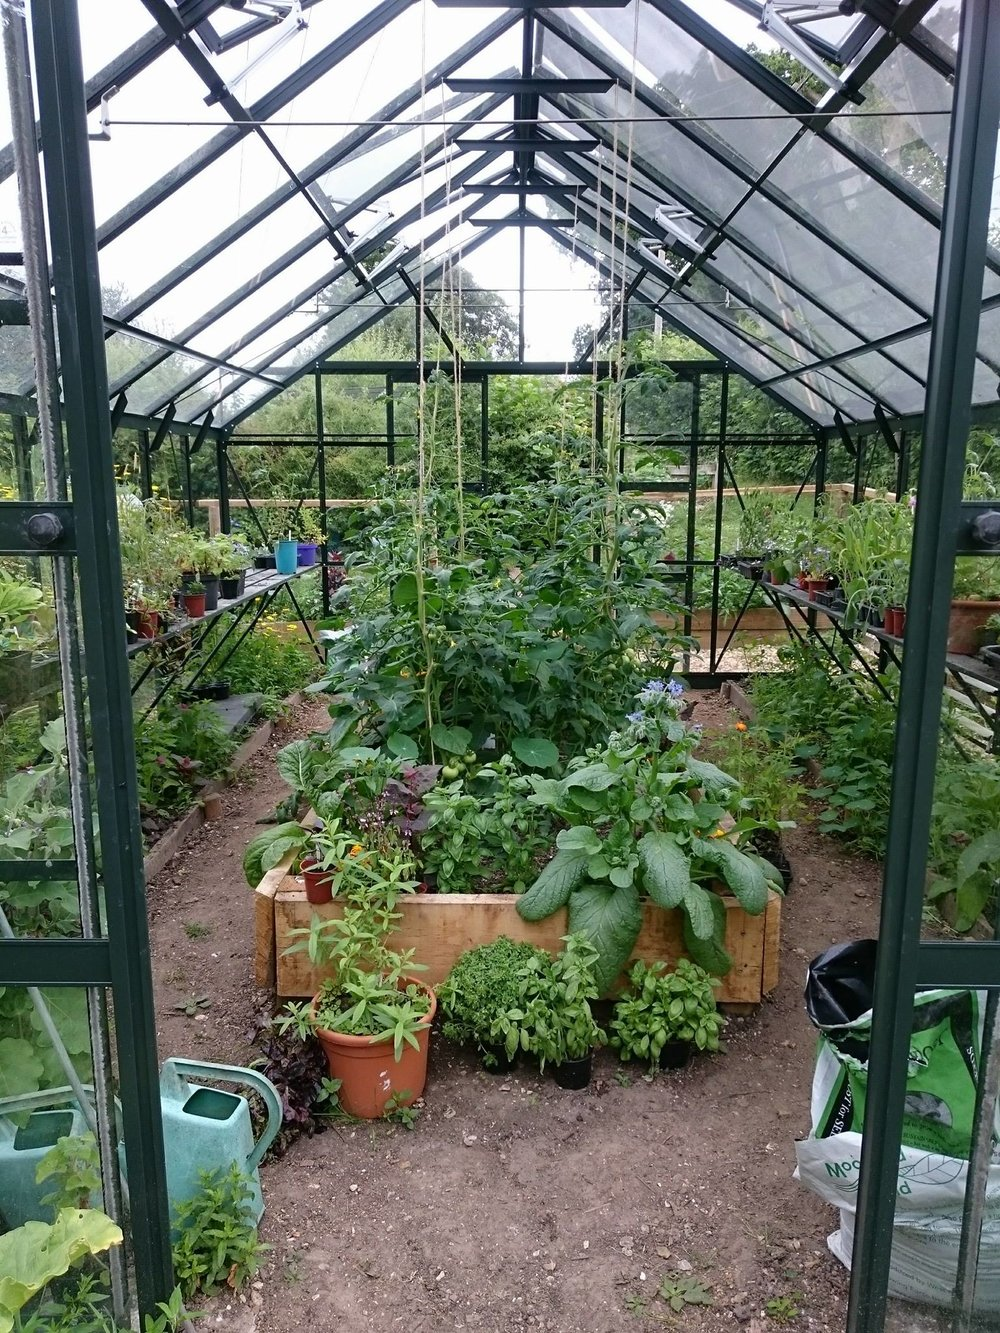 Greenhouse, growing vegetables at Minstead Study Centre